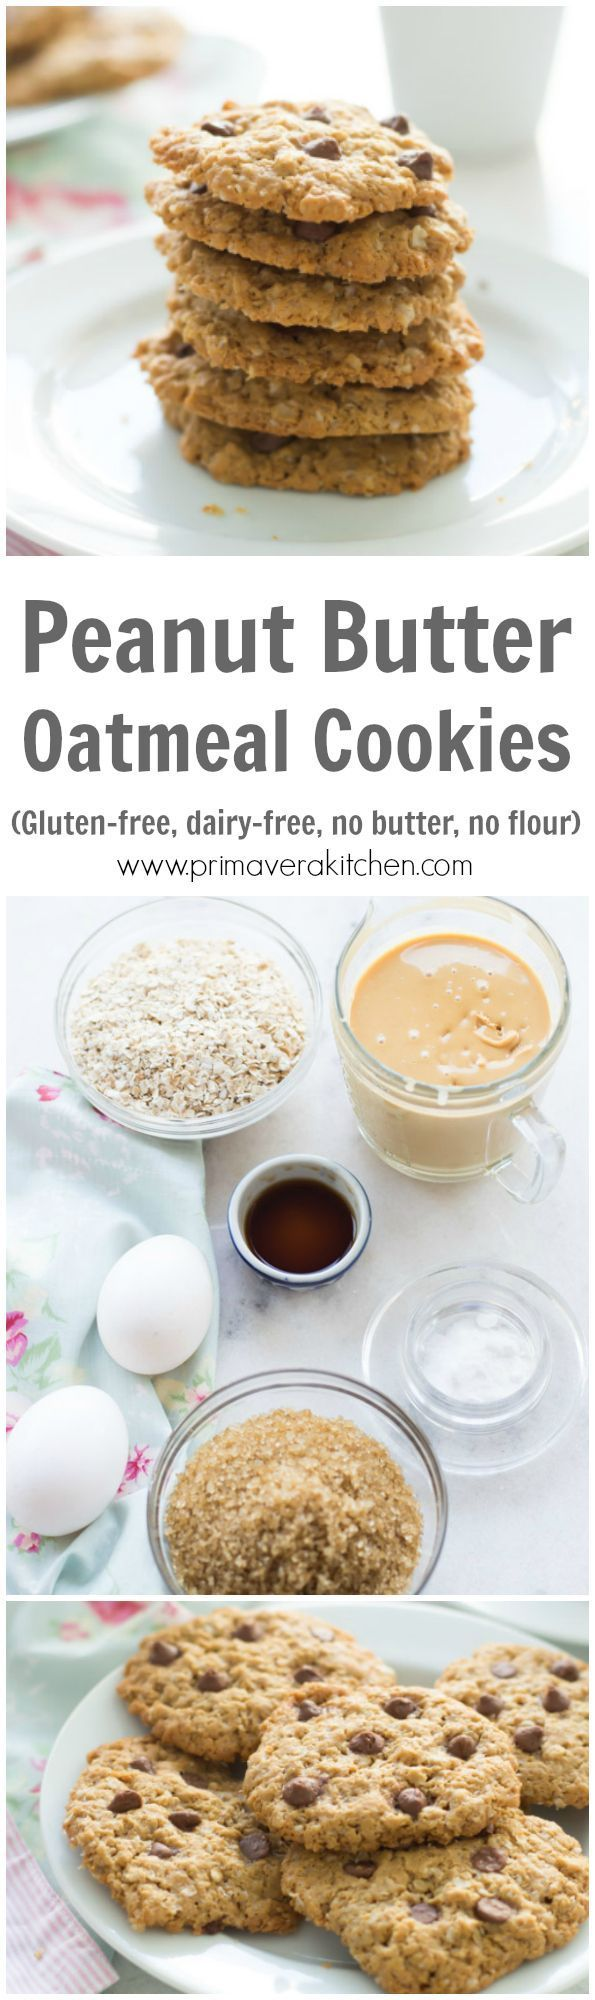 Healthy Peanut Butter Oatmeal Cookies - This delicious, soft, chewy and gluten-free Healthy Peanut Butter Oatmeal Cookies are made with no…